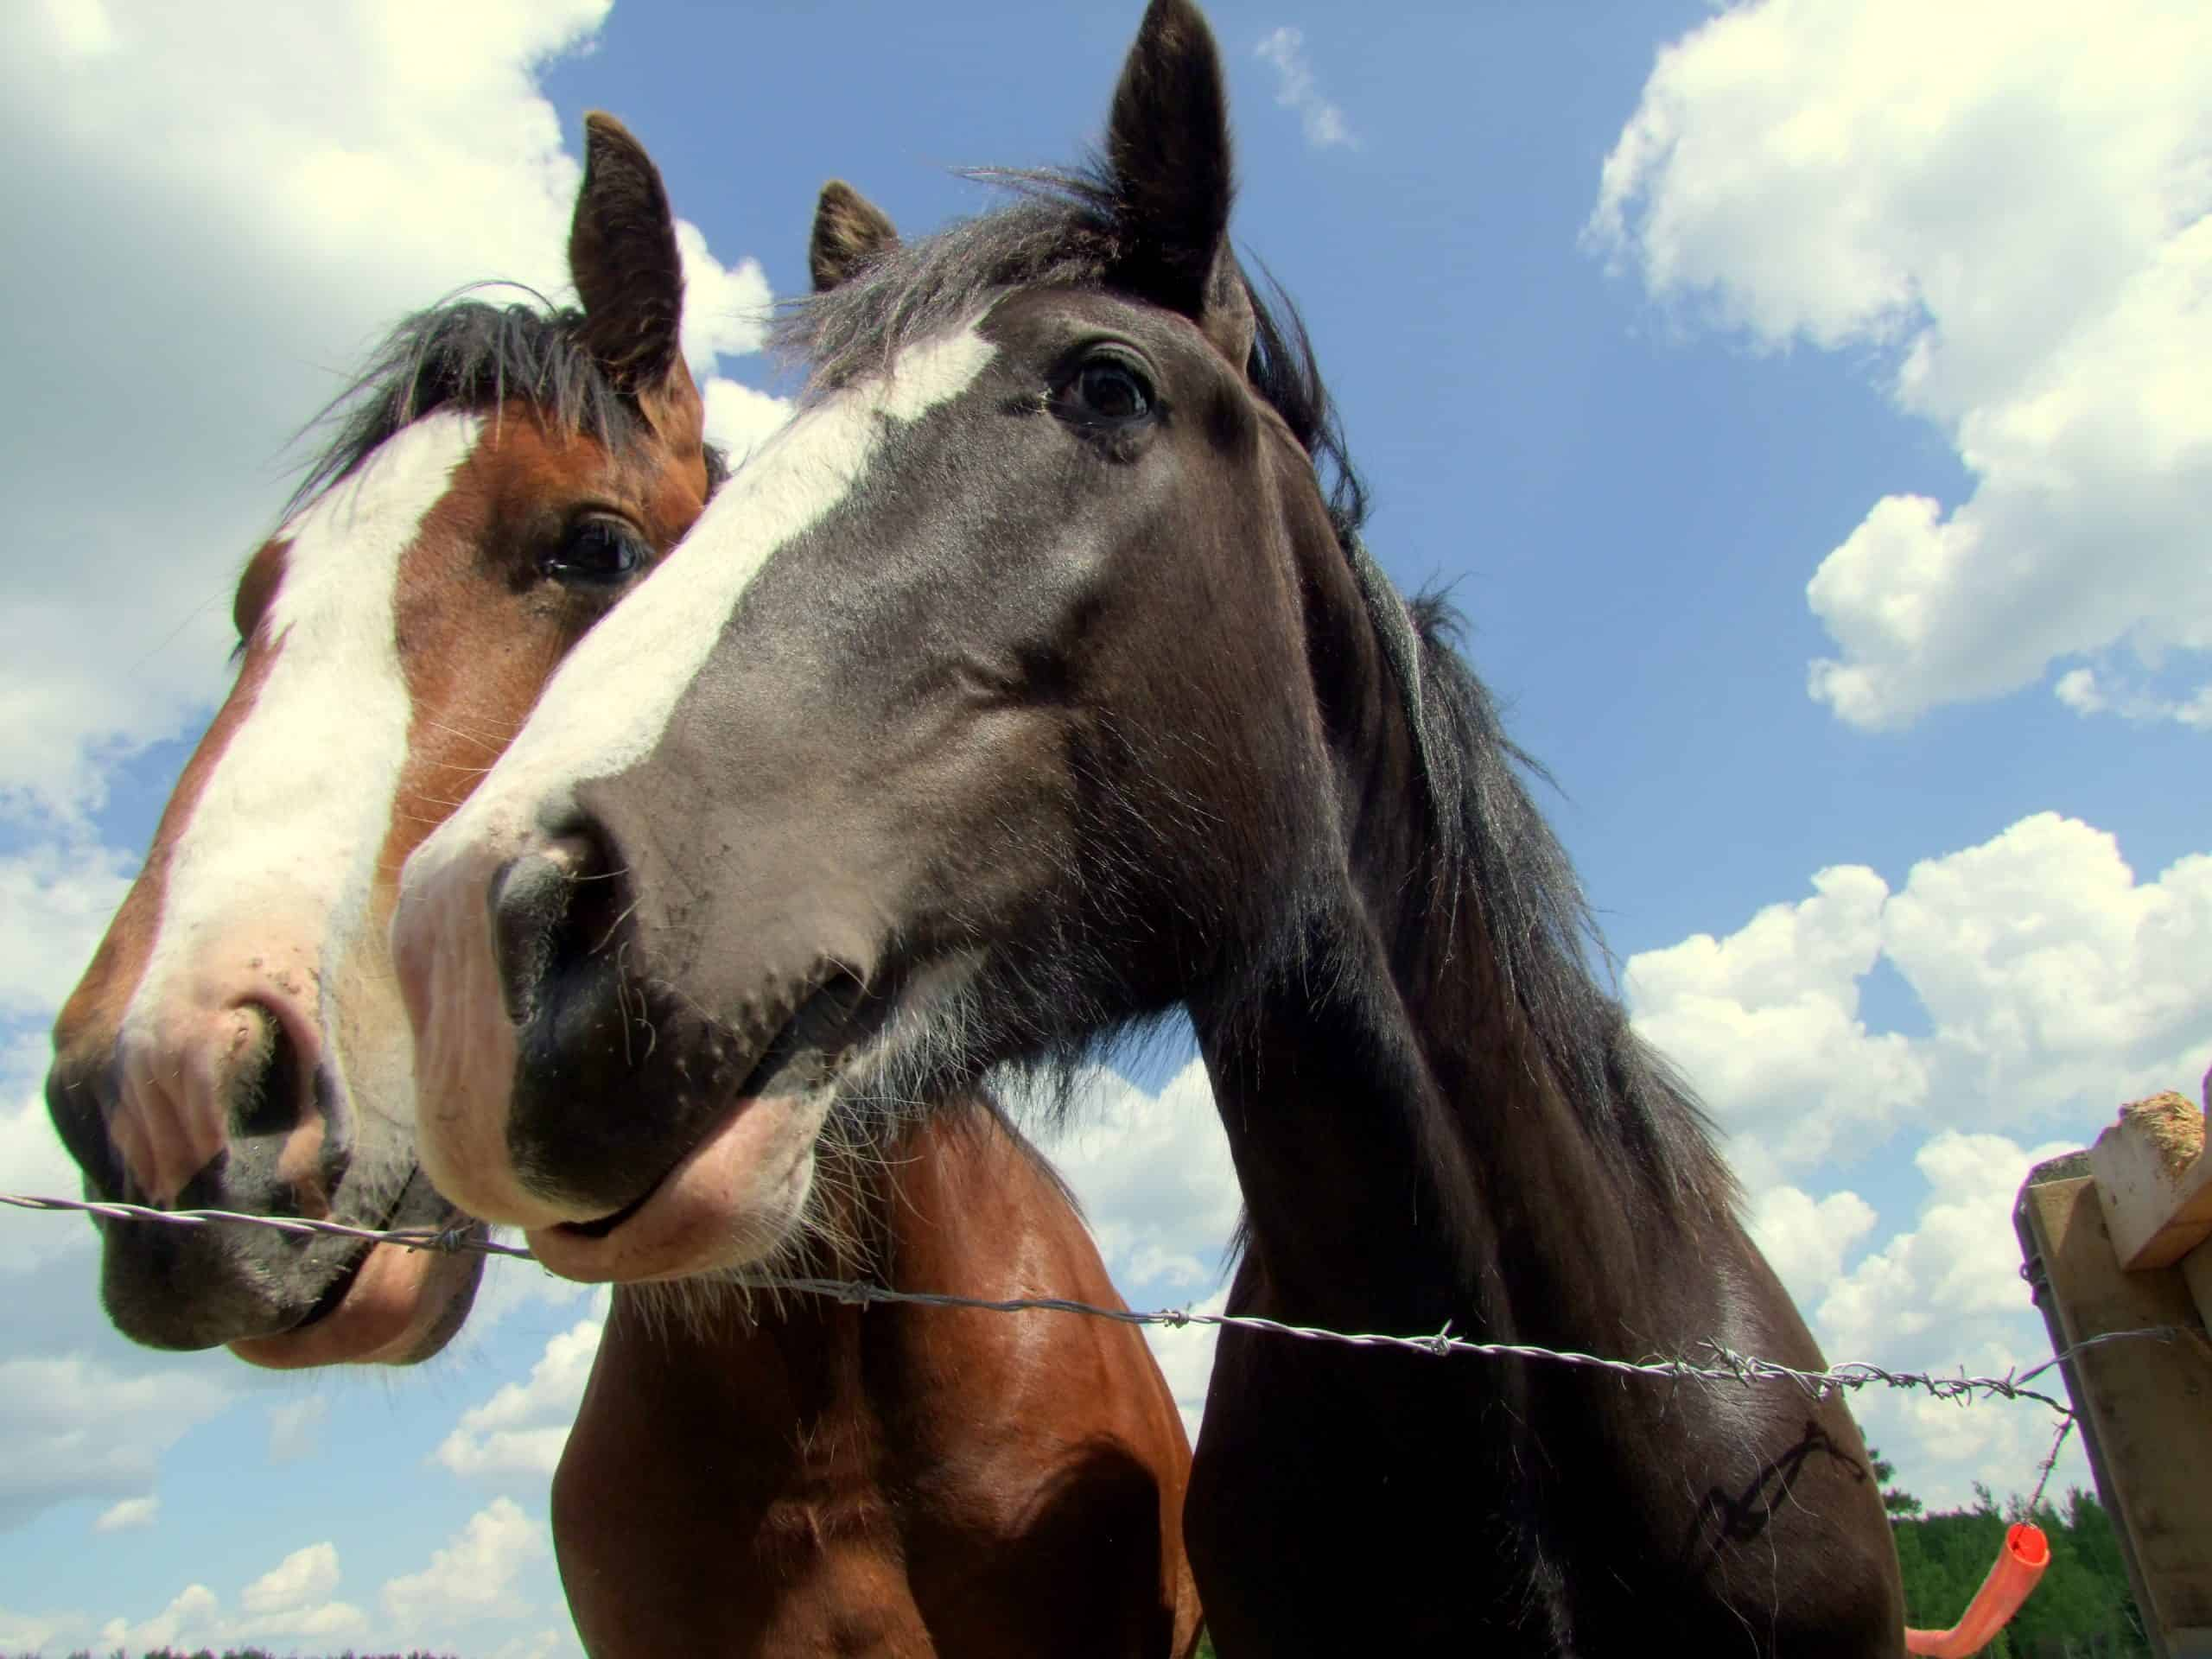 Two Clydesdale horse at the farm